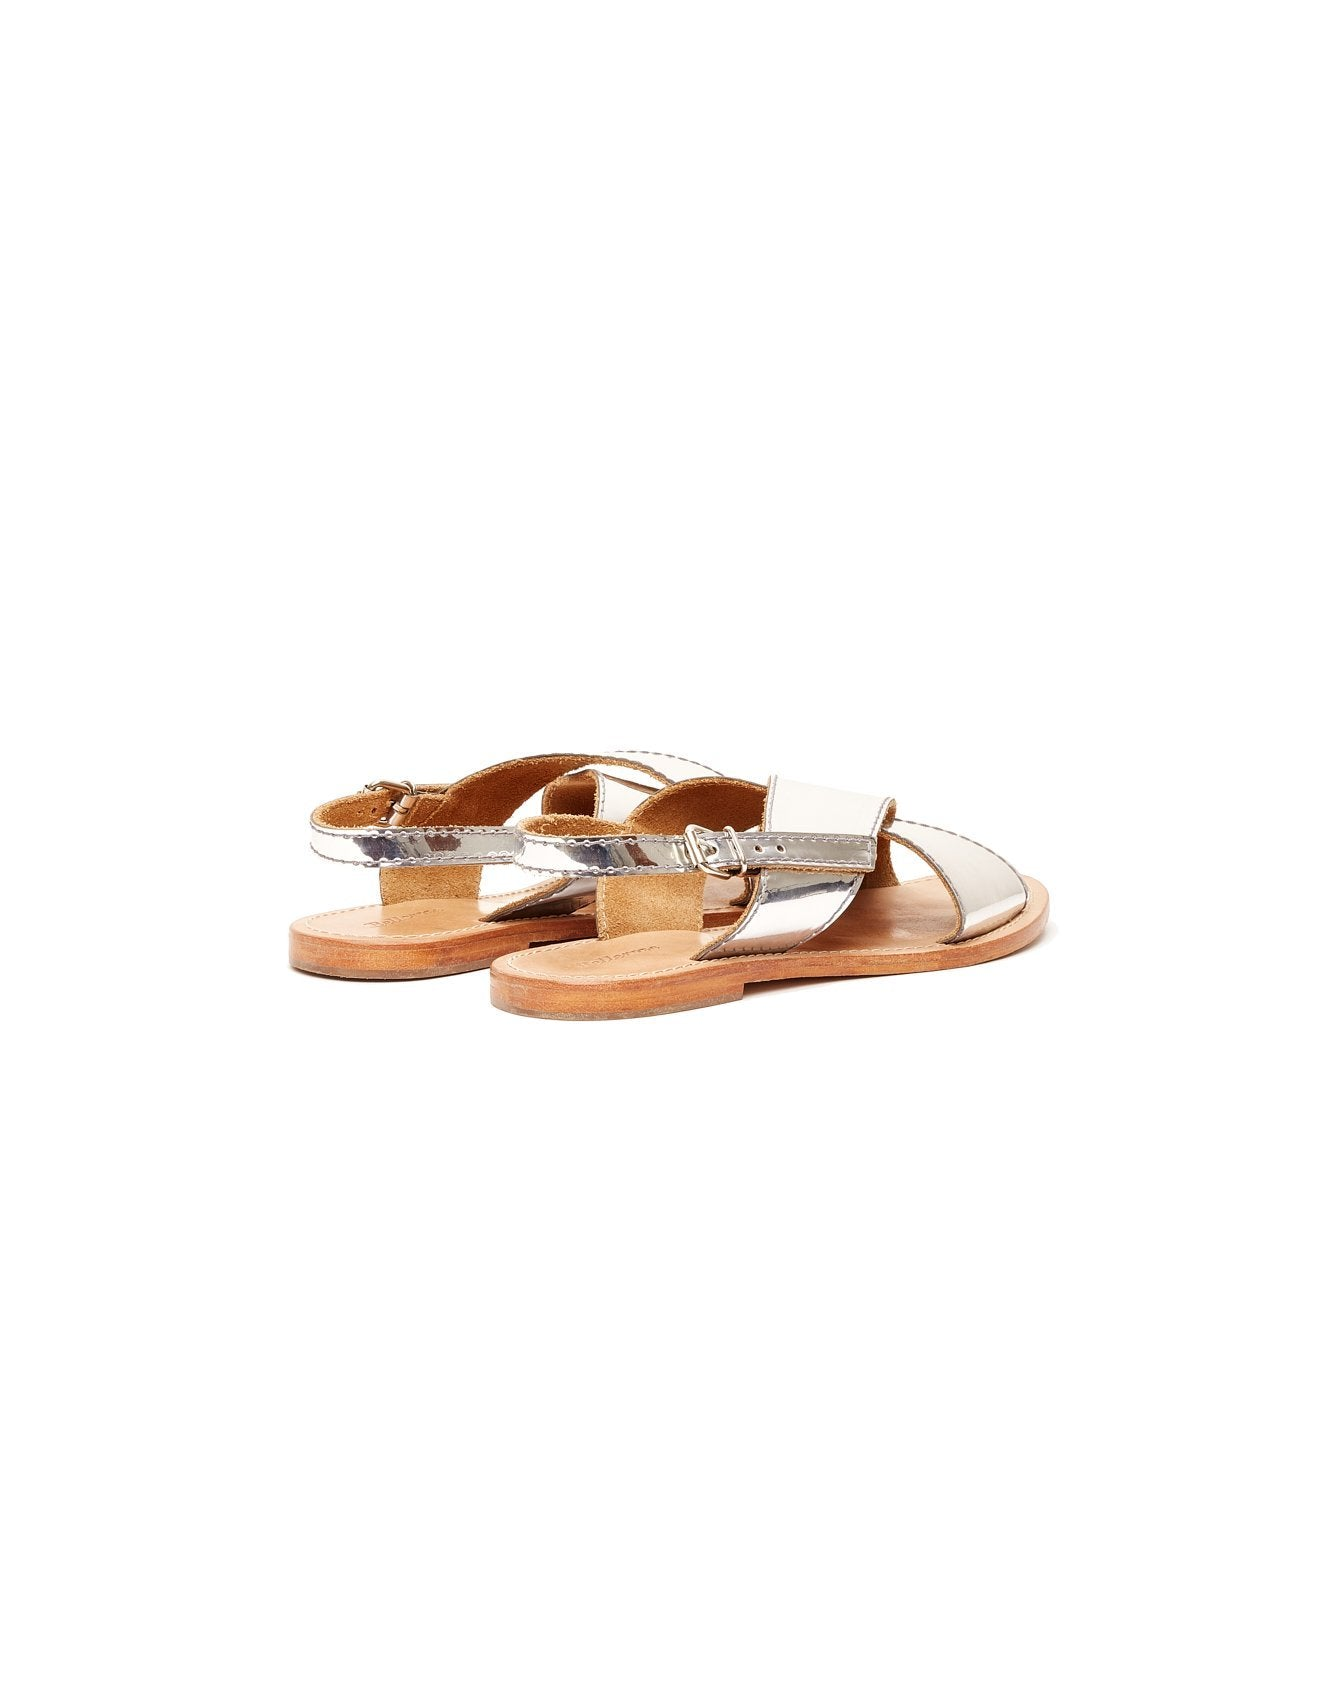 Bellerose silver patent leather sandals